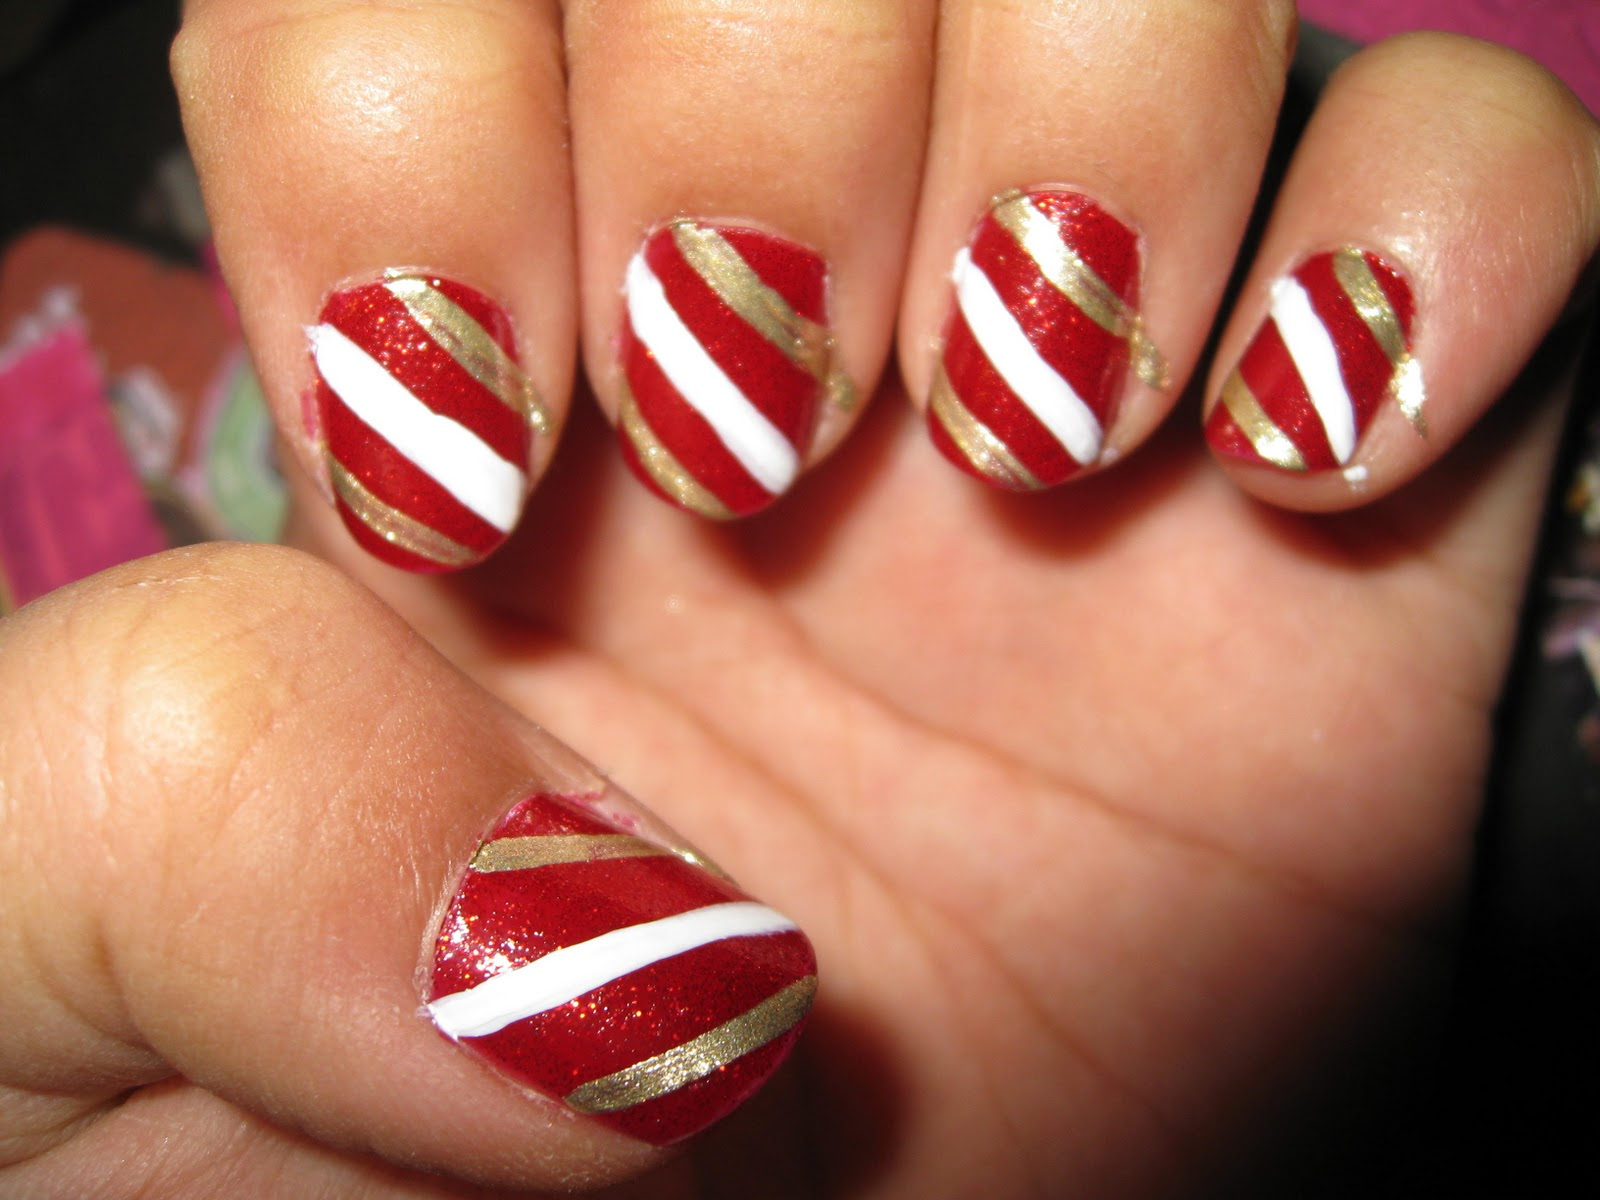 Taking the gold nail art polish, I made a gold diagonal stripe on